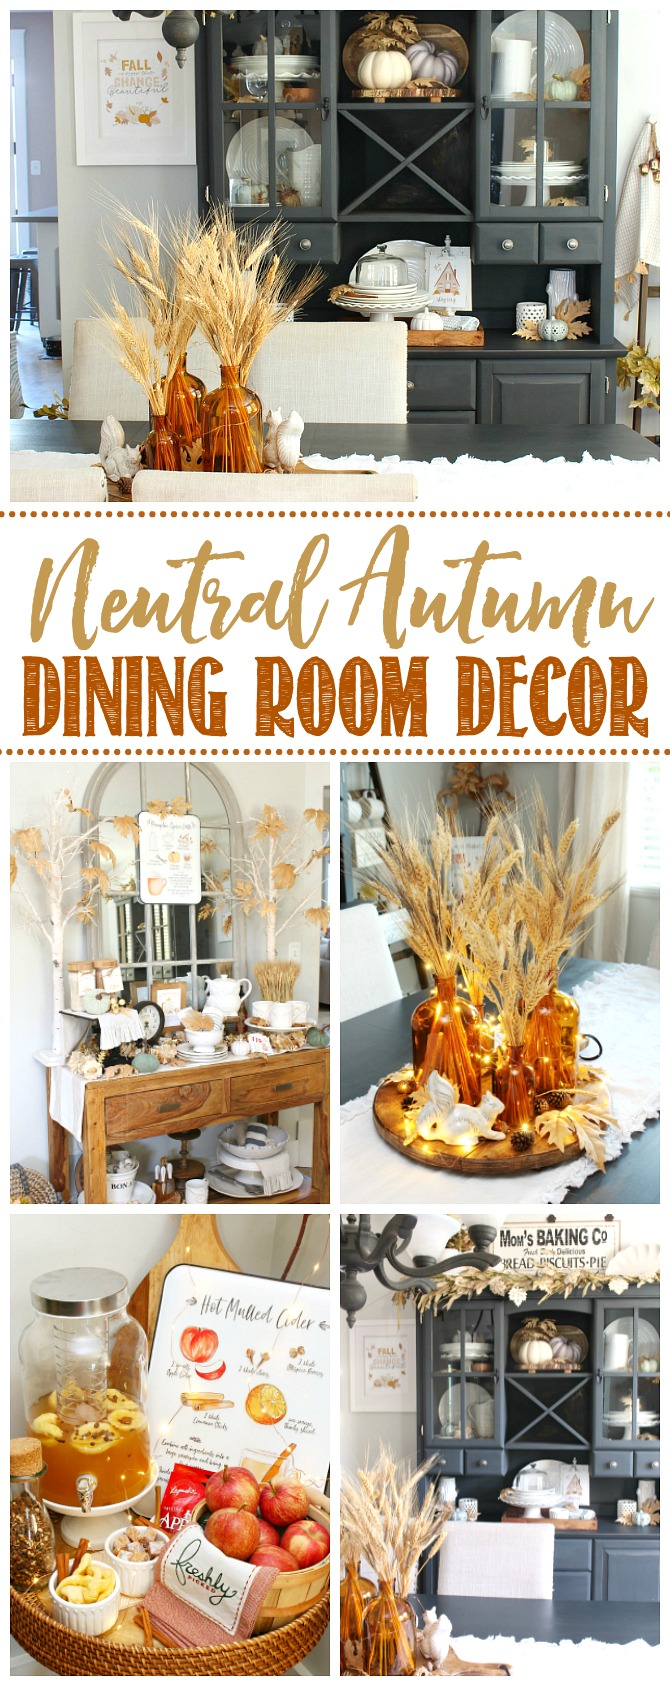 Neutral fall dining room decor ideas.